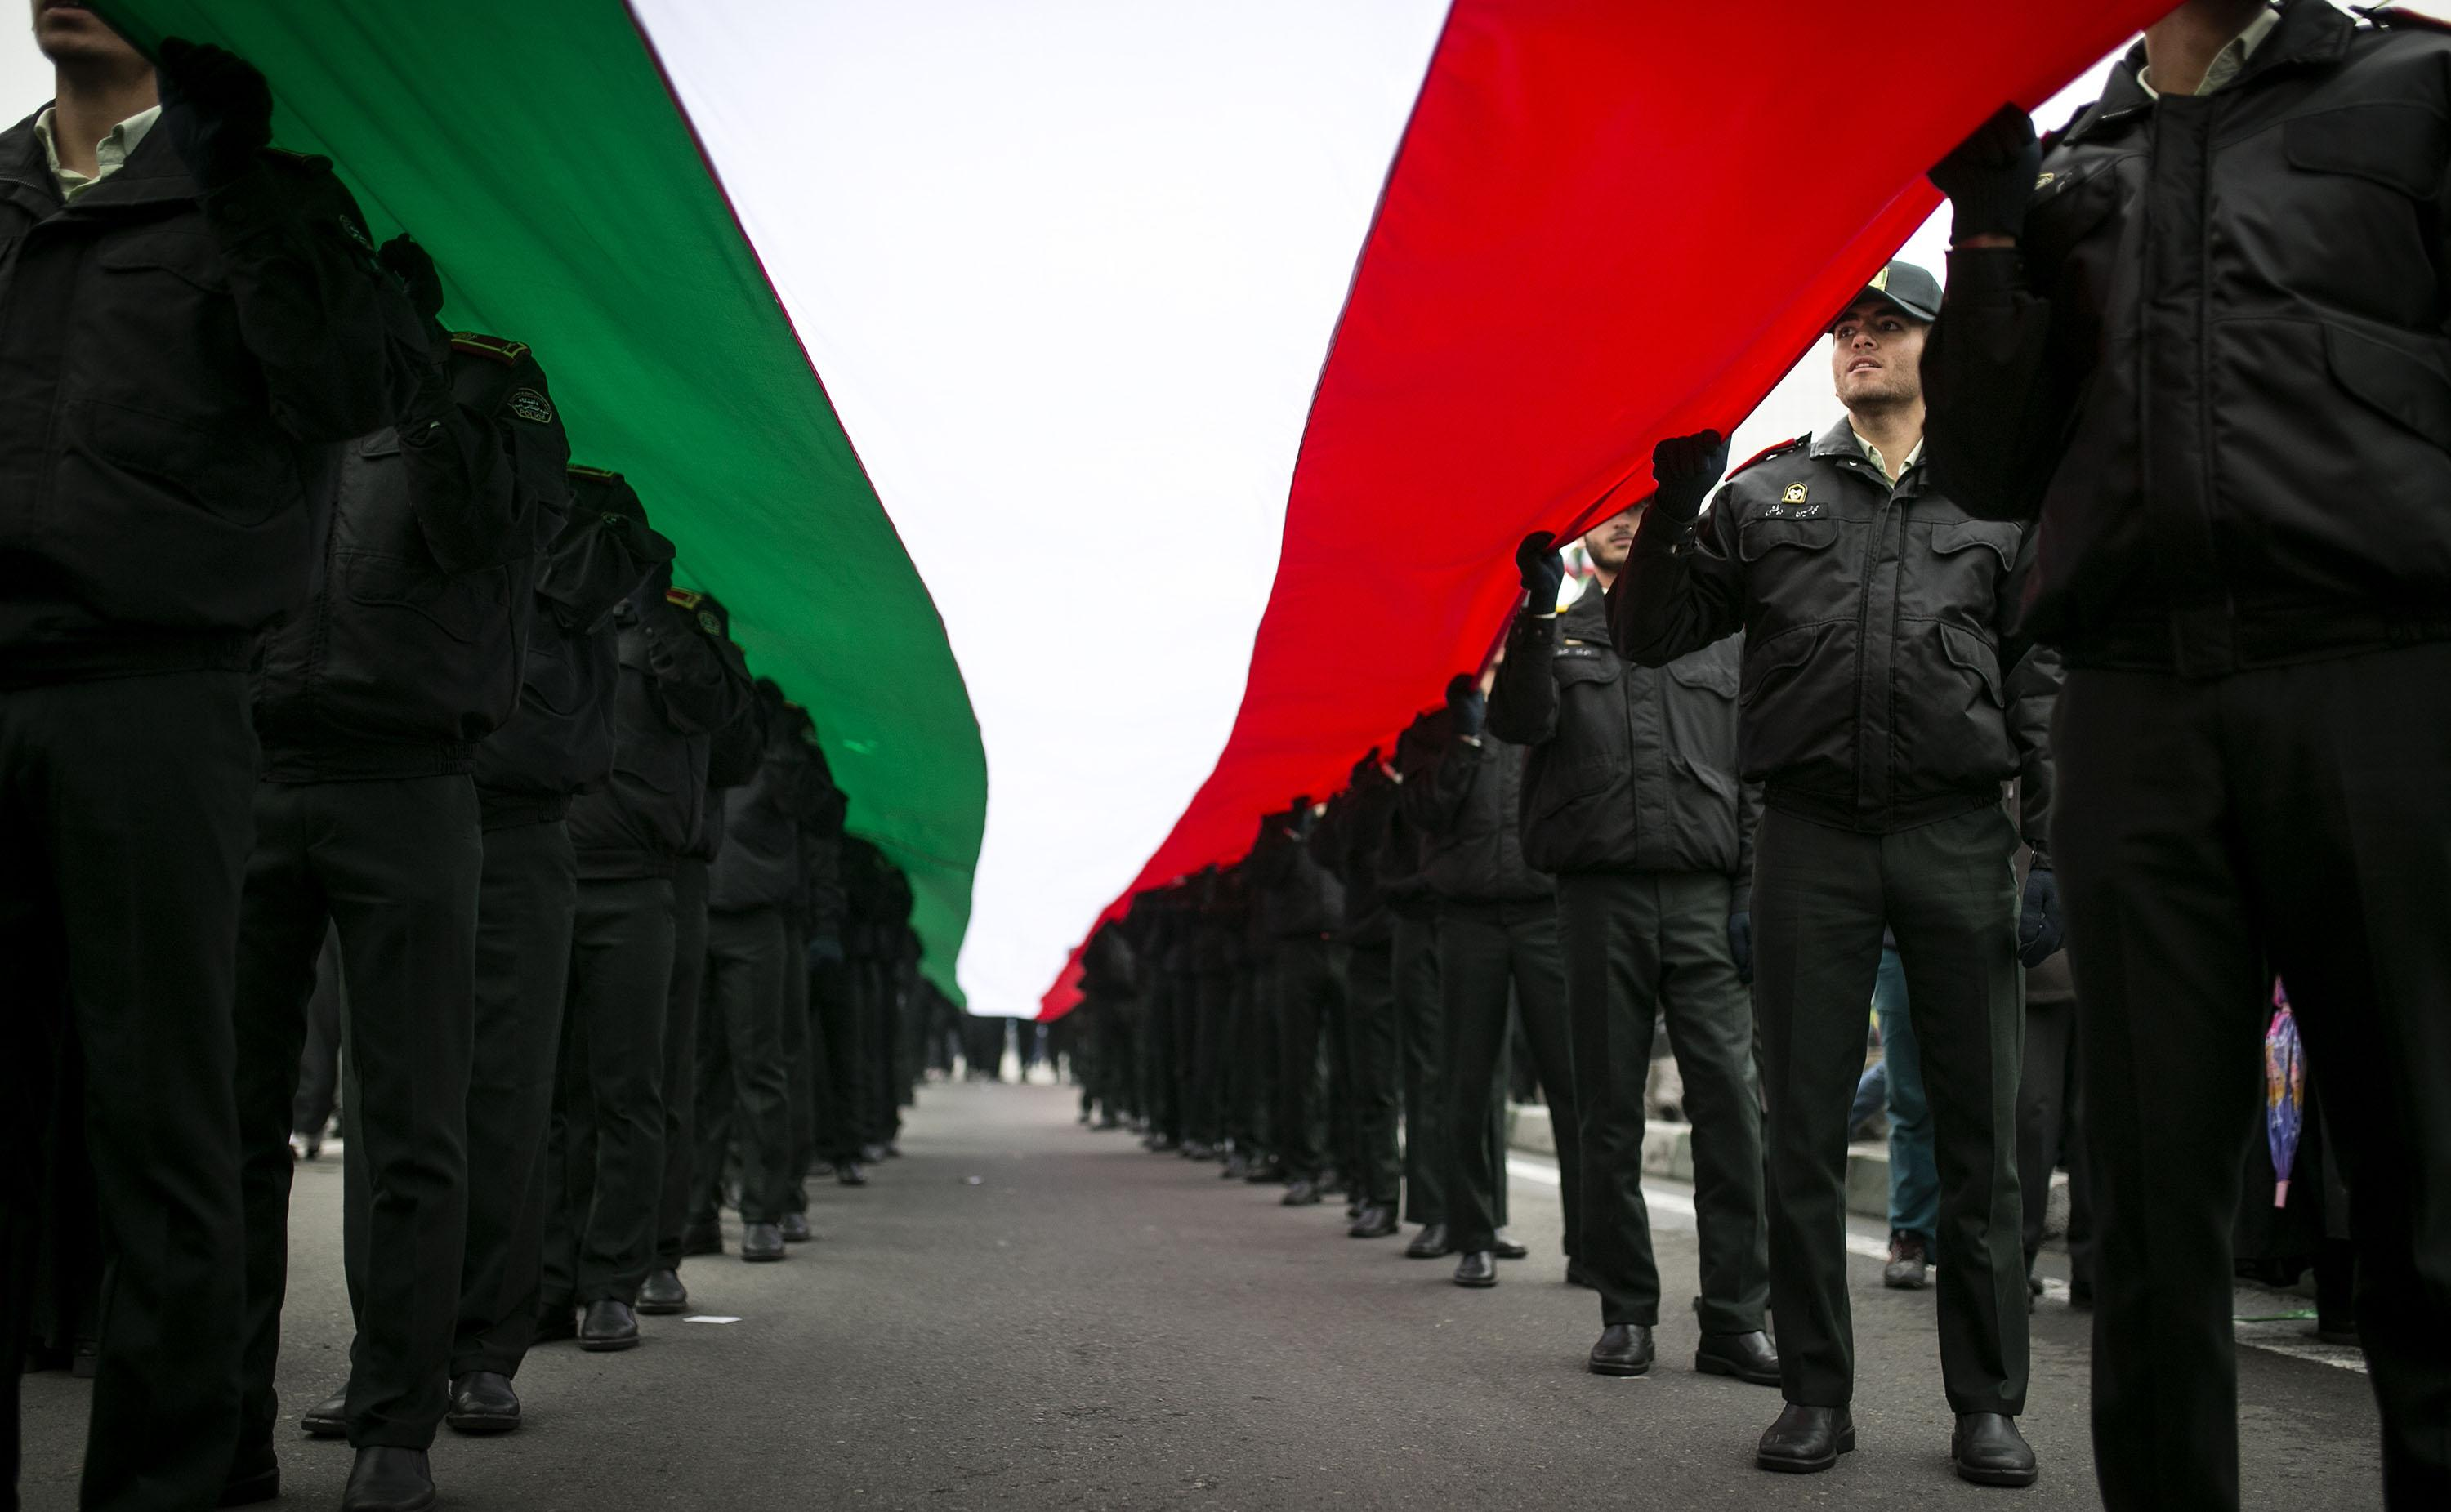 Iranian policemen hold a national flag of Iran during a rally marking the 38th anniversary of the victory of the Islamic revolution in 1979 on Feb. 10, 2017 in Tehran, Iran. (Ahmad Halabisaz/Xinhua/Zuma Press/TNS)